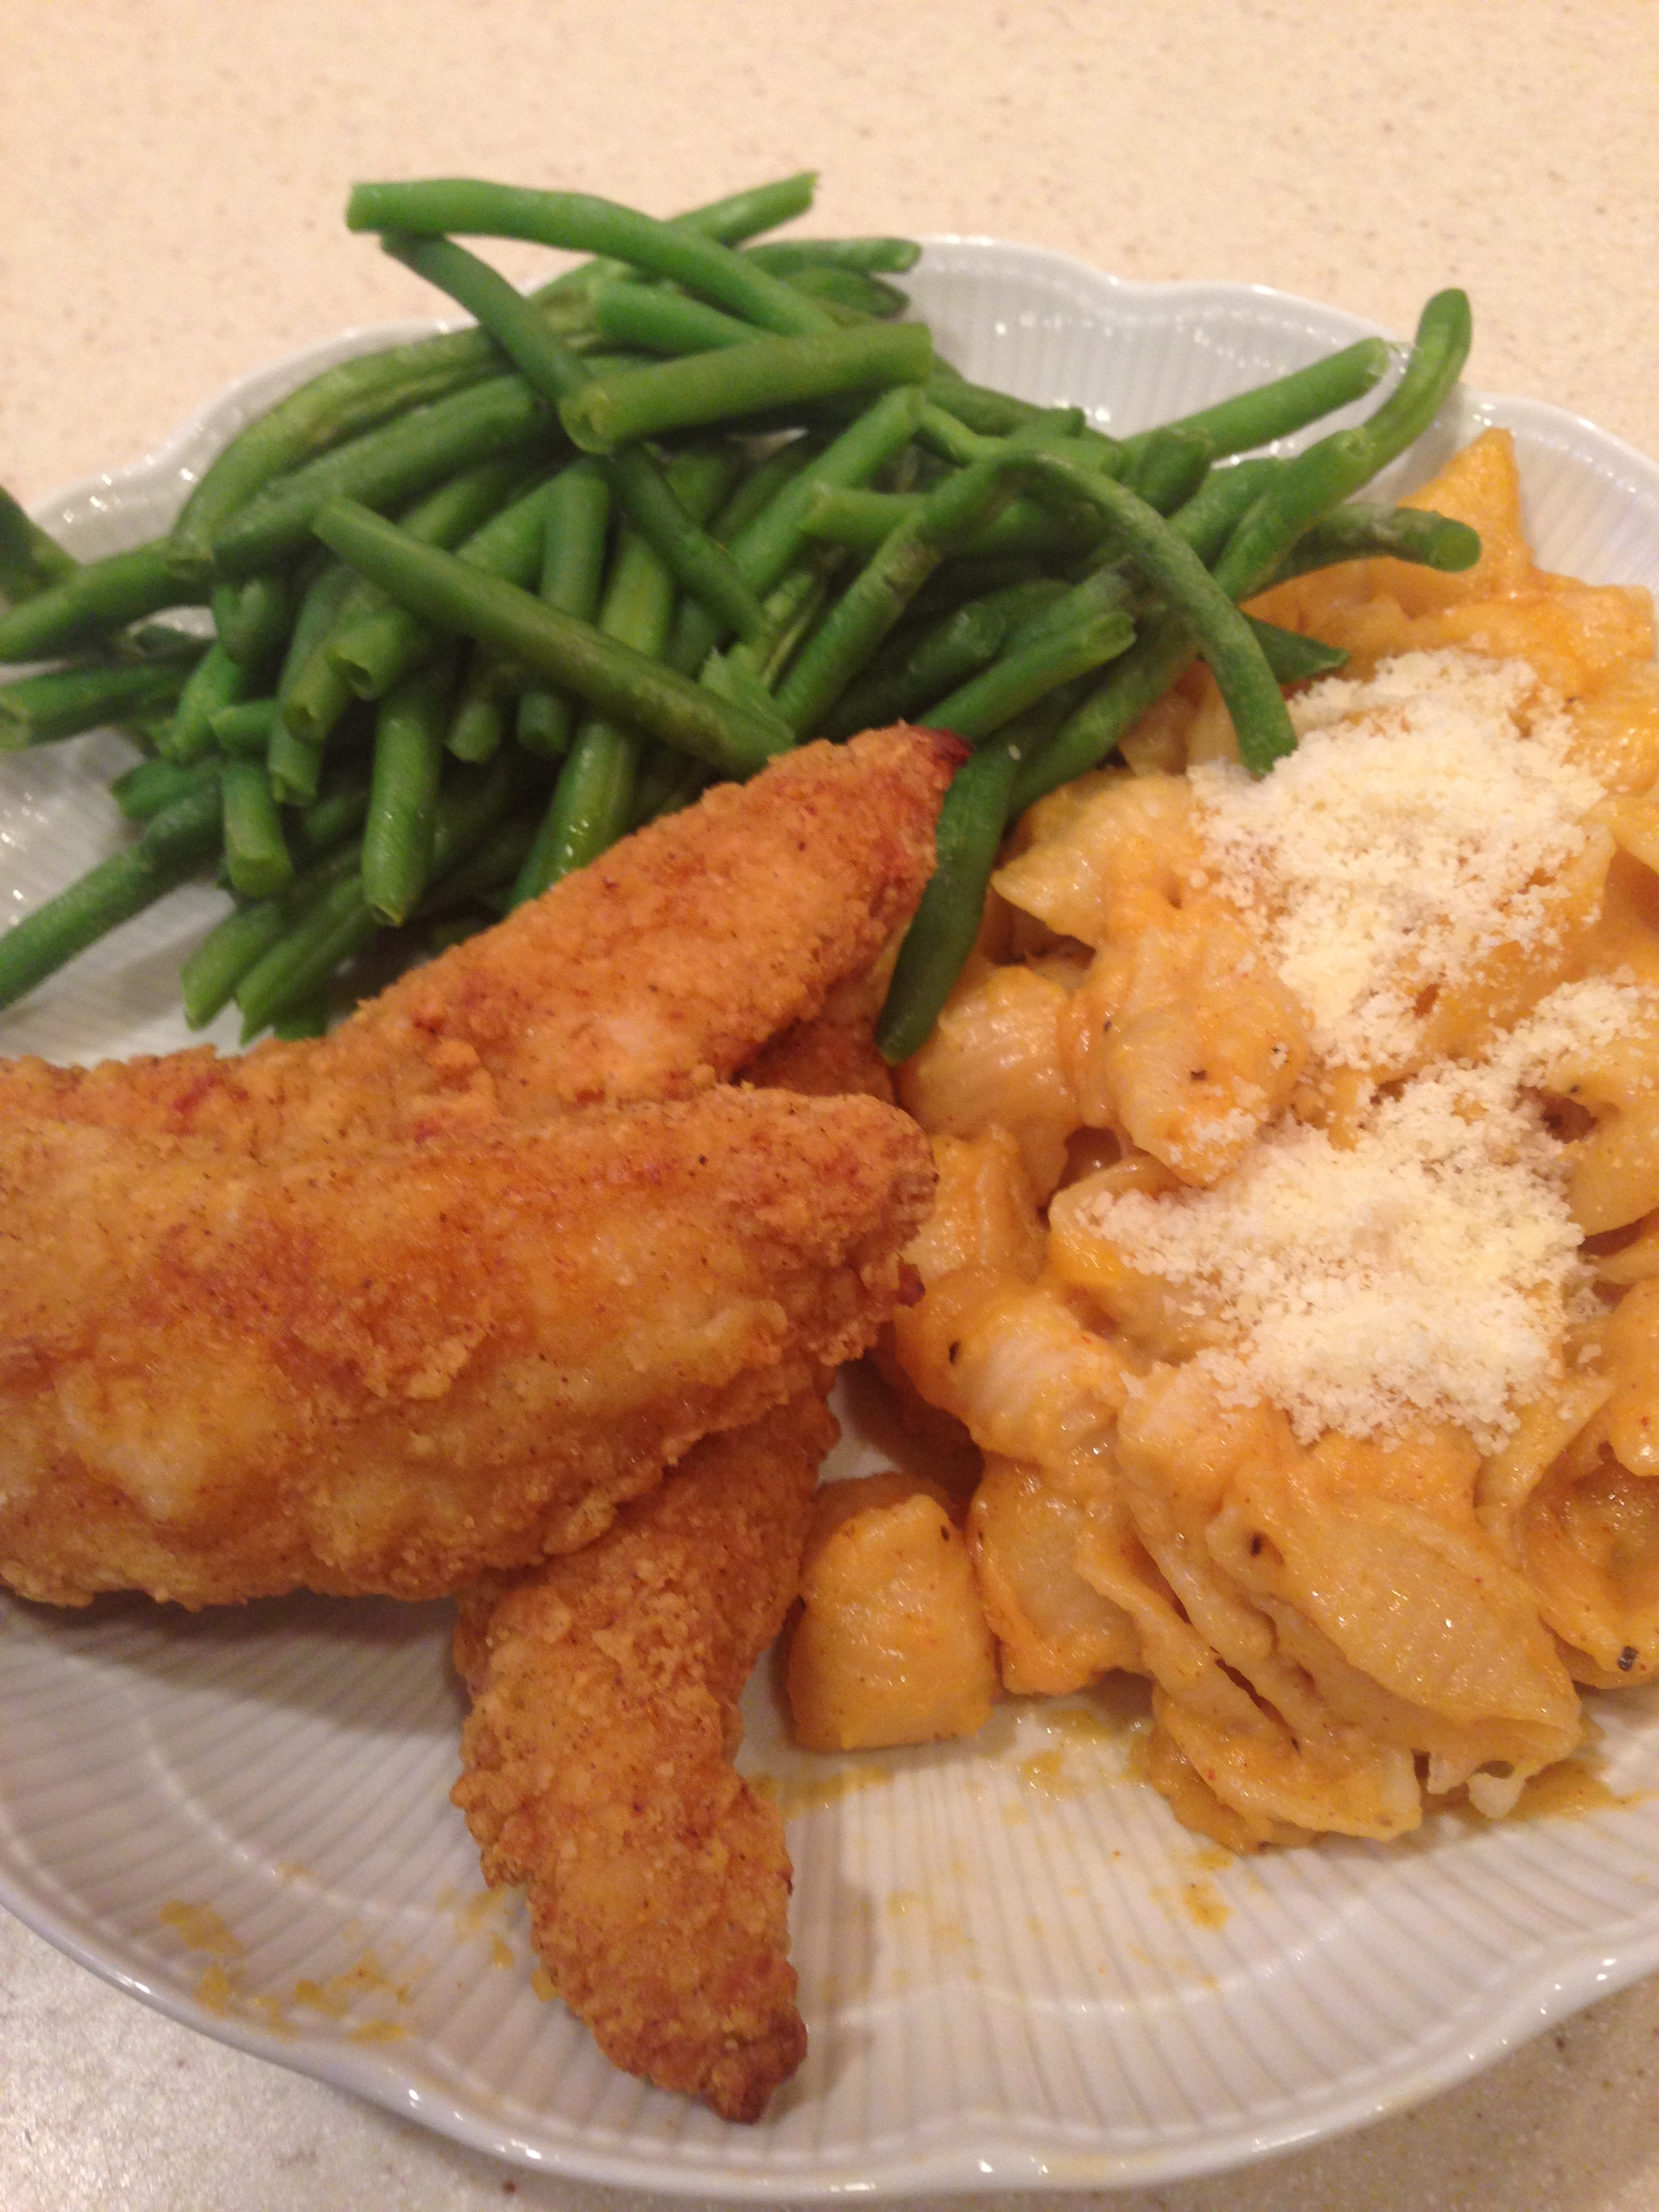 My favorite dinner combo: mac 'n cheese, chicken tenders and green beans!